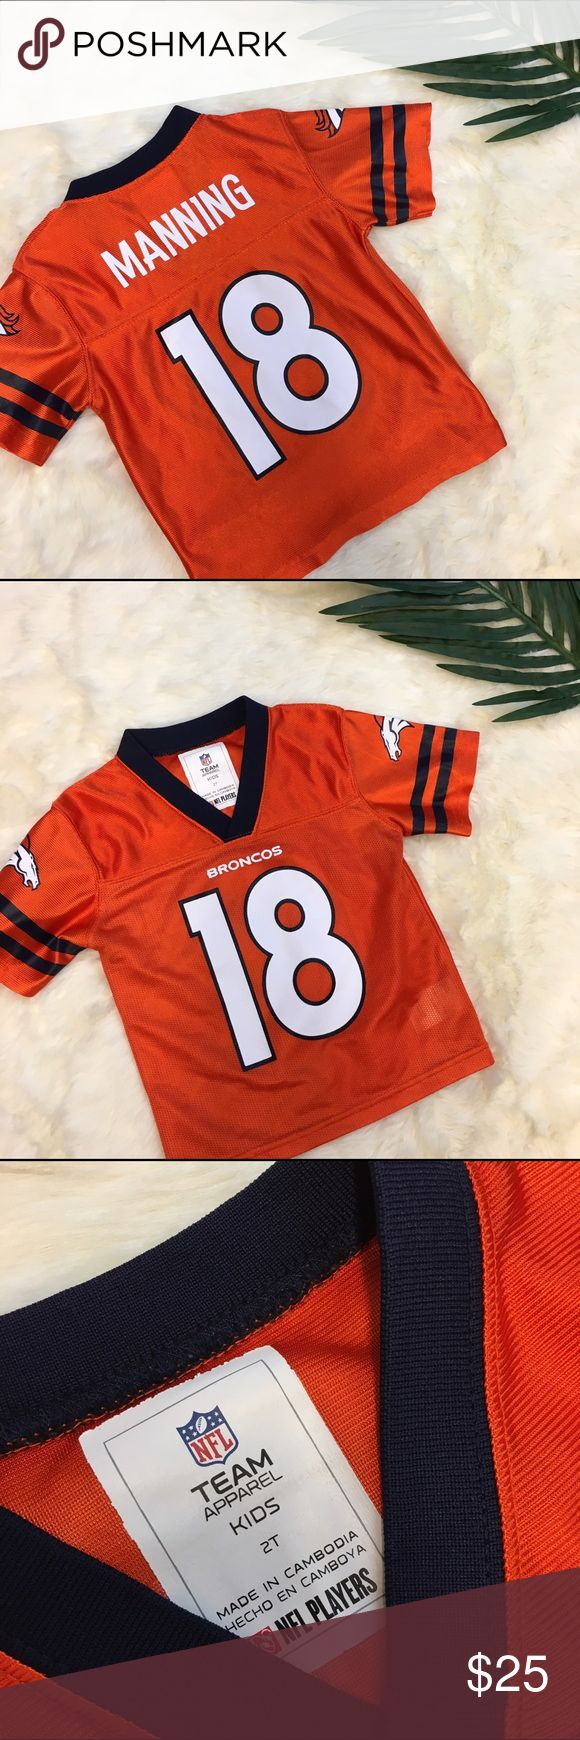 """Denver Broncos Kids Peyton Manning Jersey Denver Broncos Kids Peyton Manning """"18"""" Jersey. Looks like the paint may be starting to peel in a couple of places (see pics) but otherwise in great condition. Great for your little boy or girl! Perfect for any little Peyton fan! NFL Team Apparel Shirts & Tops"""